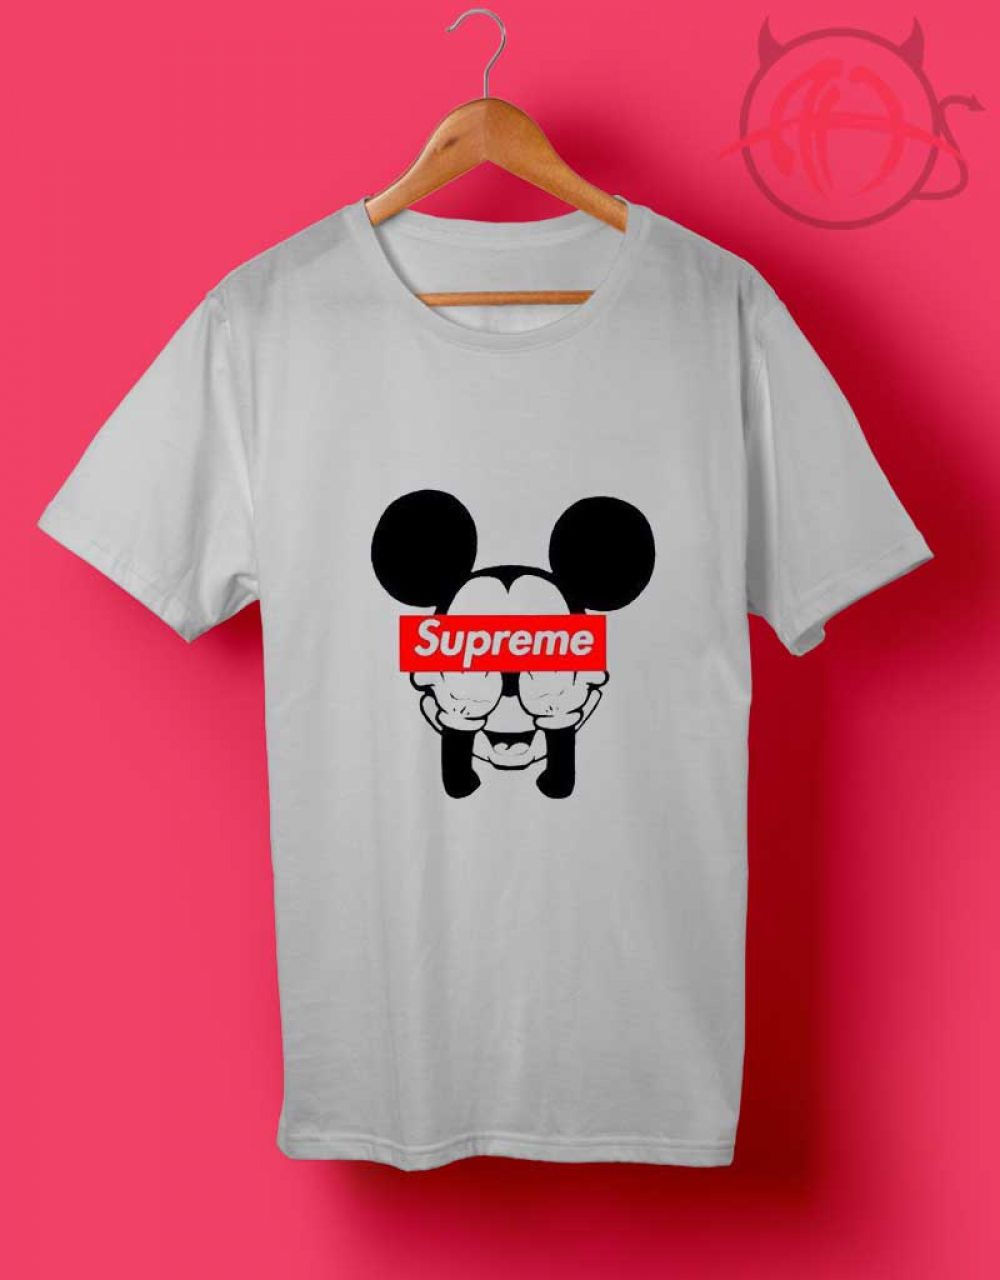 b3074319 Mickey Mouse Supreme T Shirt $ 14.50 #Tee #Hype #Outfits #Outfit #Hypebeast  #fashion #shirt #Tees #Tops #Teen